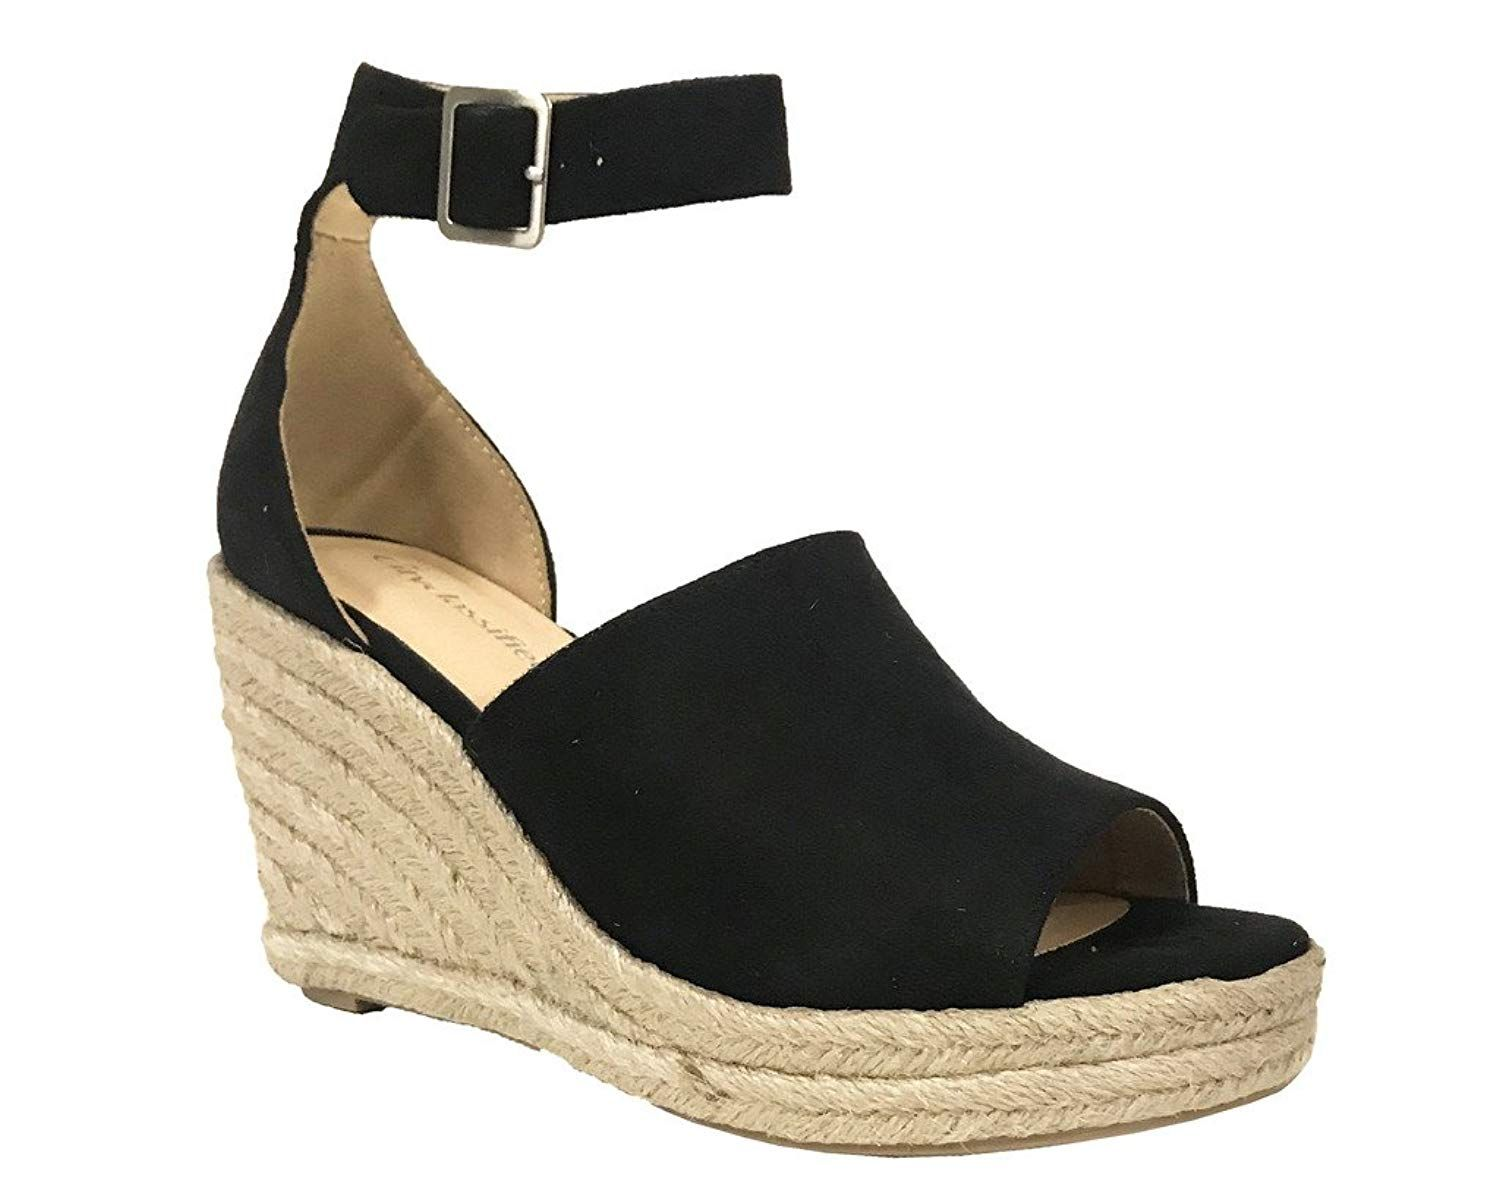 b73d08889ad City Classified Joy Women s Ankle Strap Espadrilles Wedge Sandals. New City  Classified Joy Women s Open Toe Ankle Strap Braided Wrap Around Platform ...